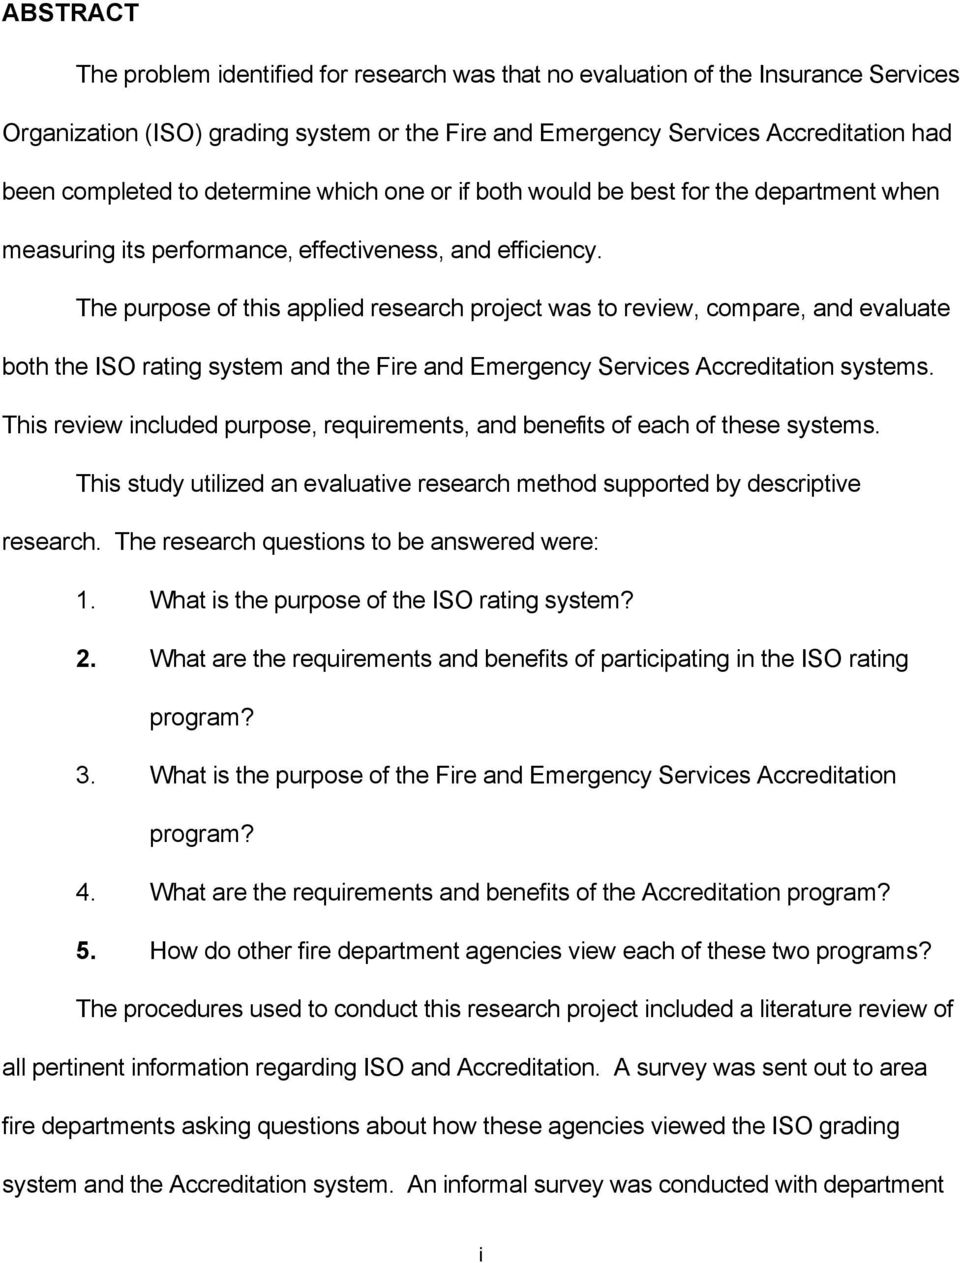 The purpose of this applied research project was to review, compare, and evaluate both the ISO rating system and the Fire and Emergency Services Accreditation systems.